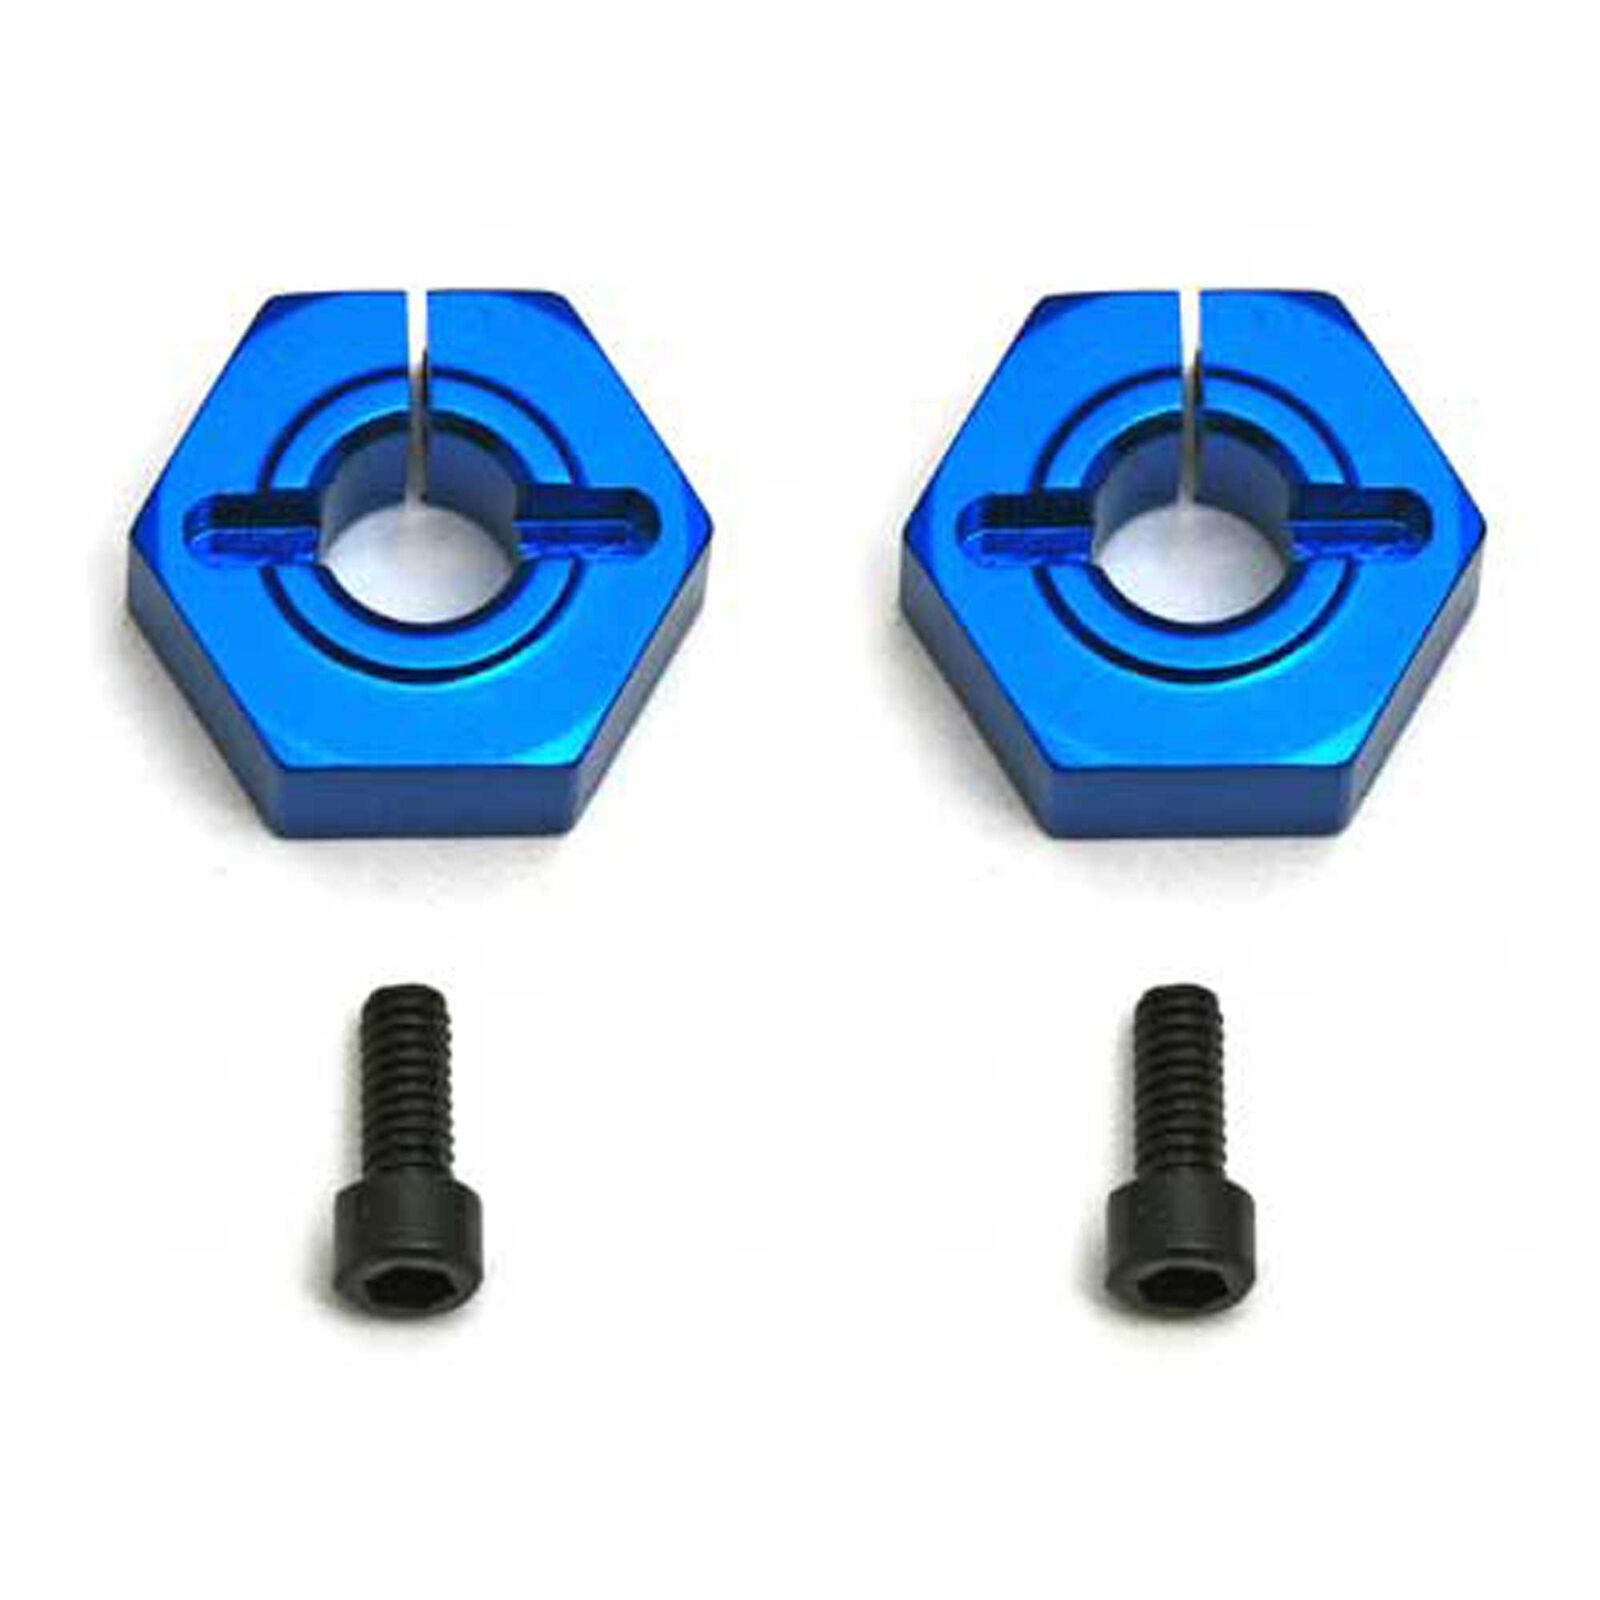 Factory Team 12mm Aluminum Clamping Wheel Hexes Buggy Front